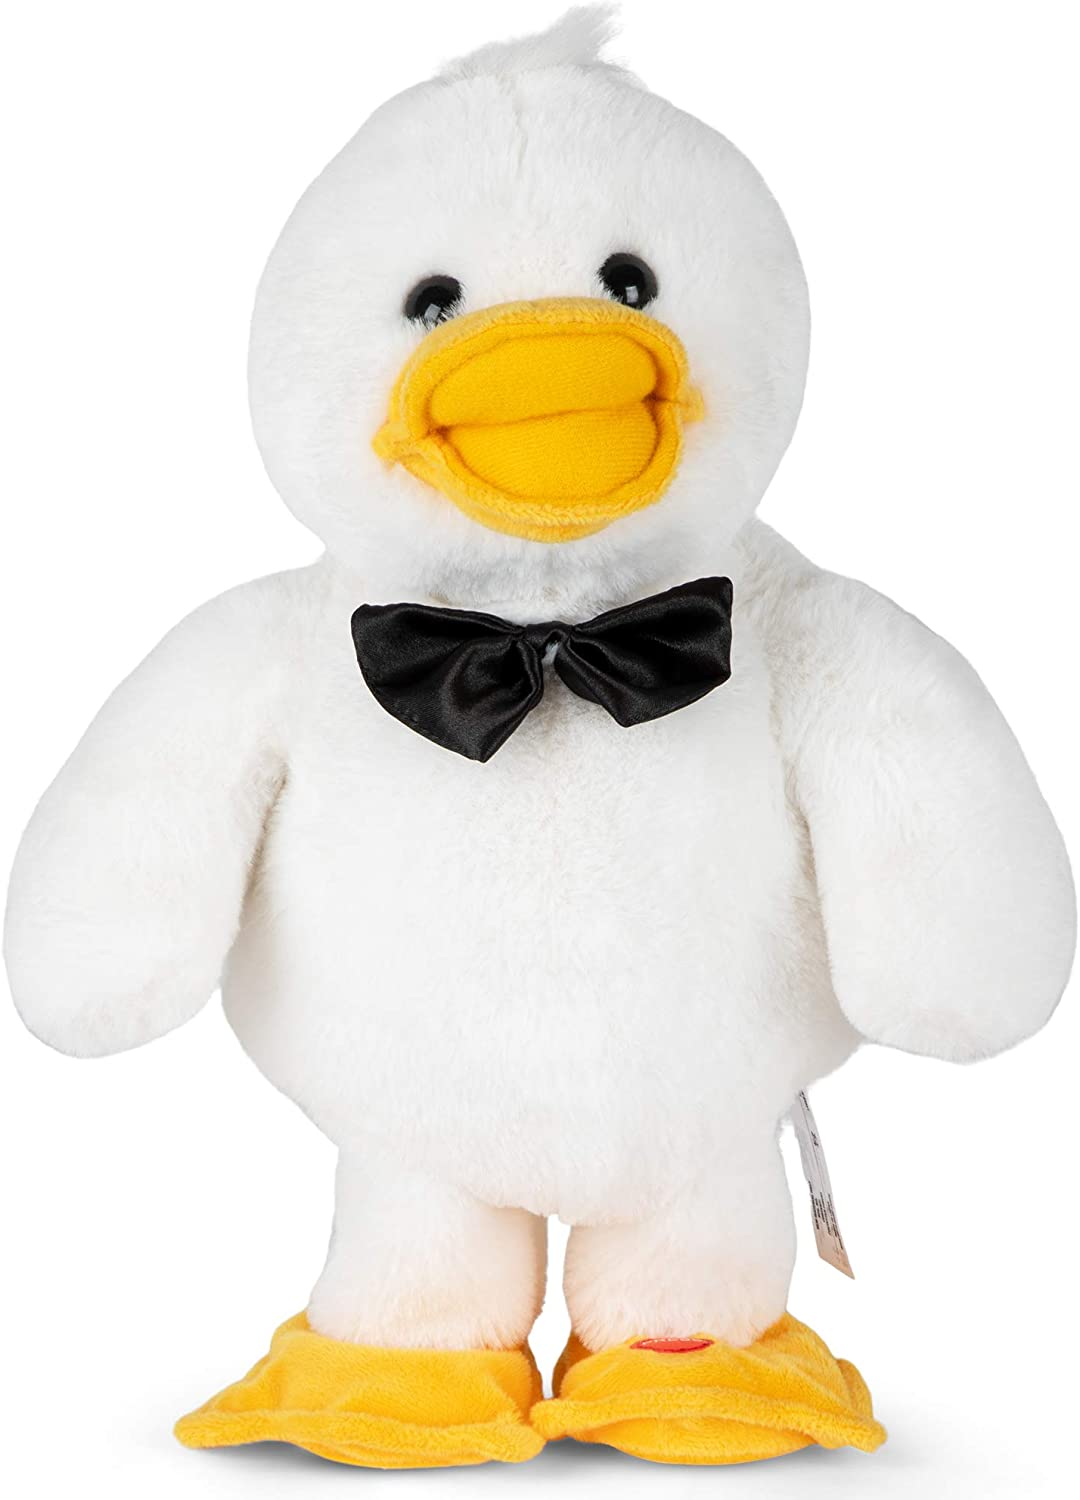 4GreenFrogs Premium Duck Plush Toy, Dancing & Singing - Soft Duck Stuffed Animals for Toddlers and Kids - Cute Talking Animal Toys - Singing Plushie, Great for Laughter & Fun